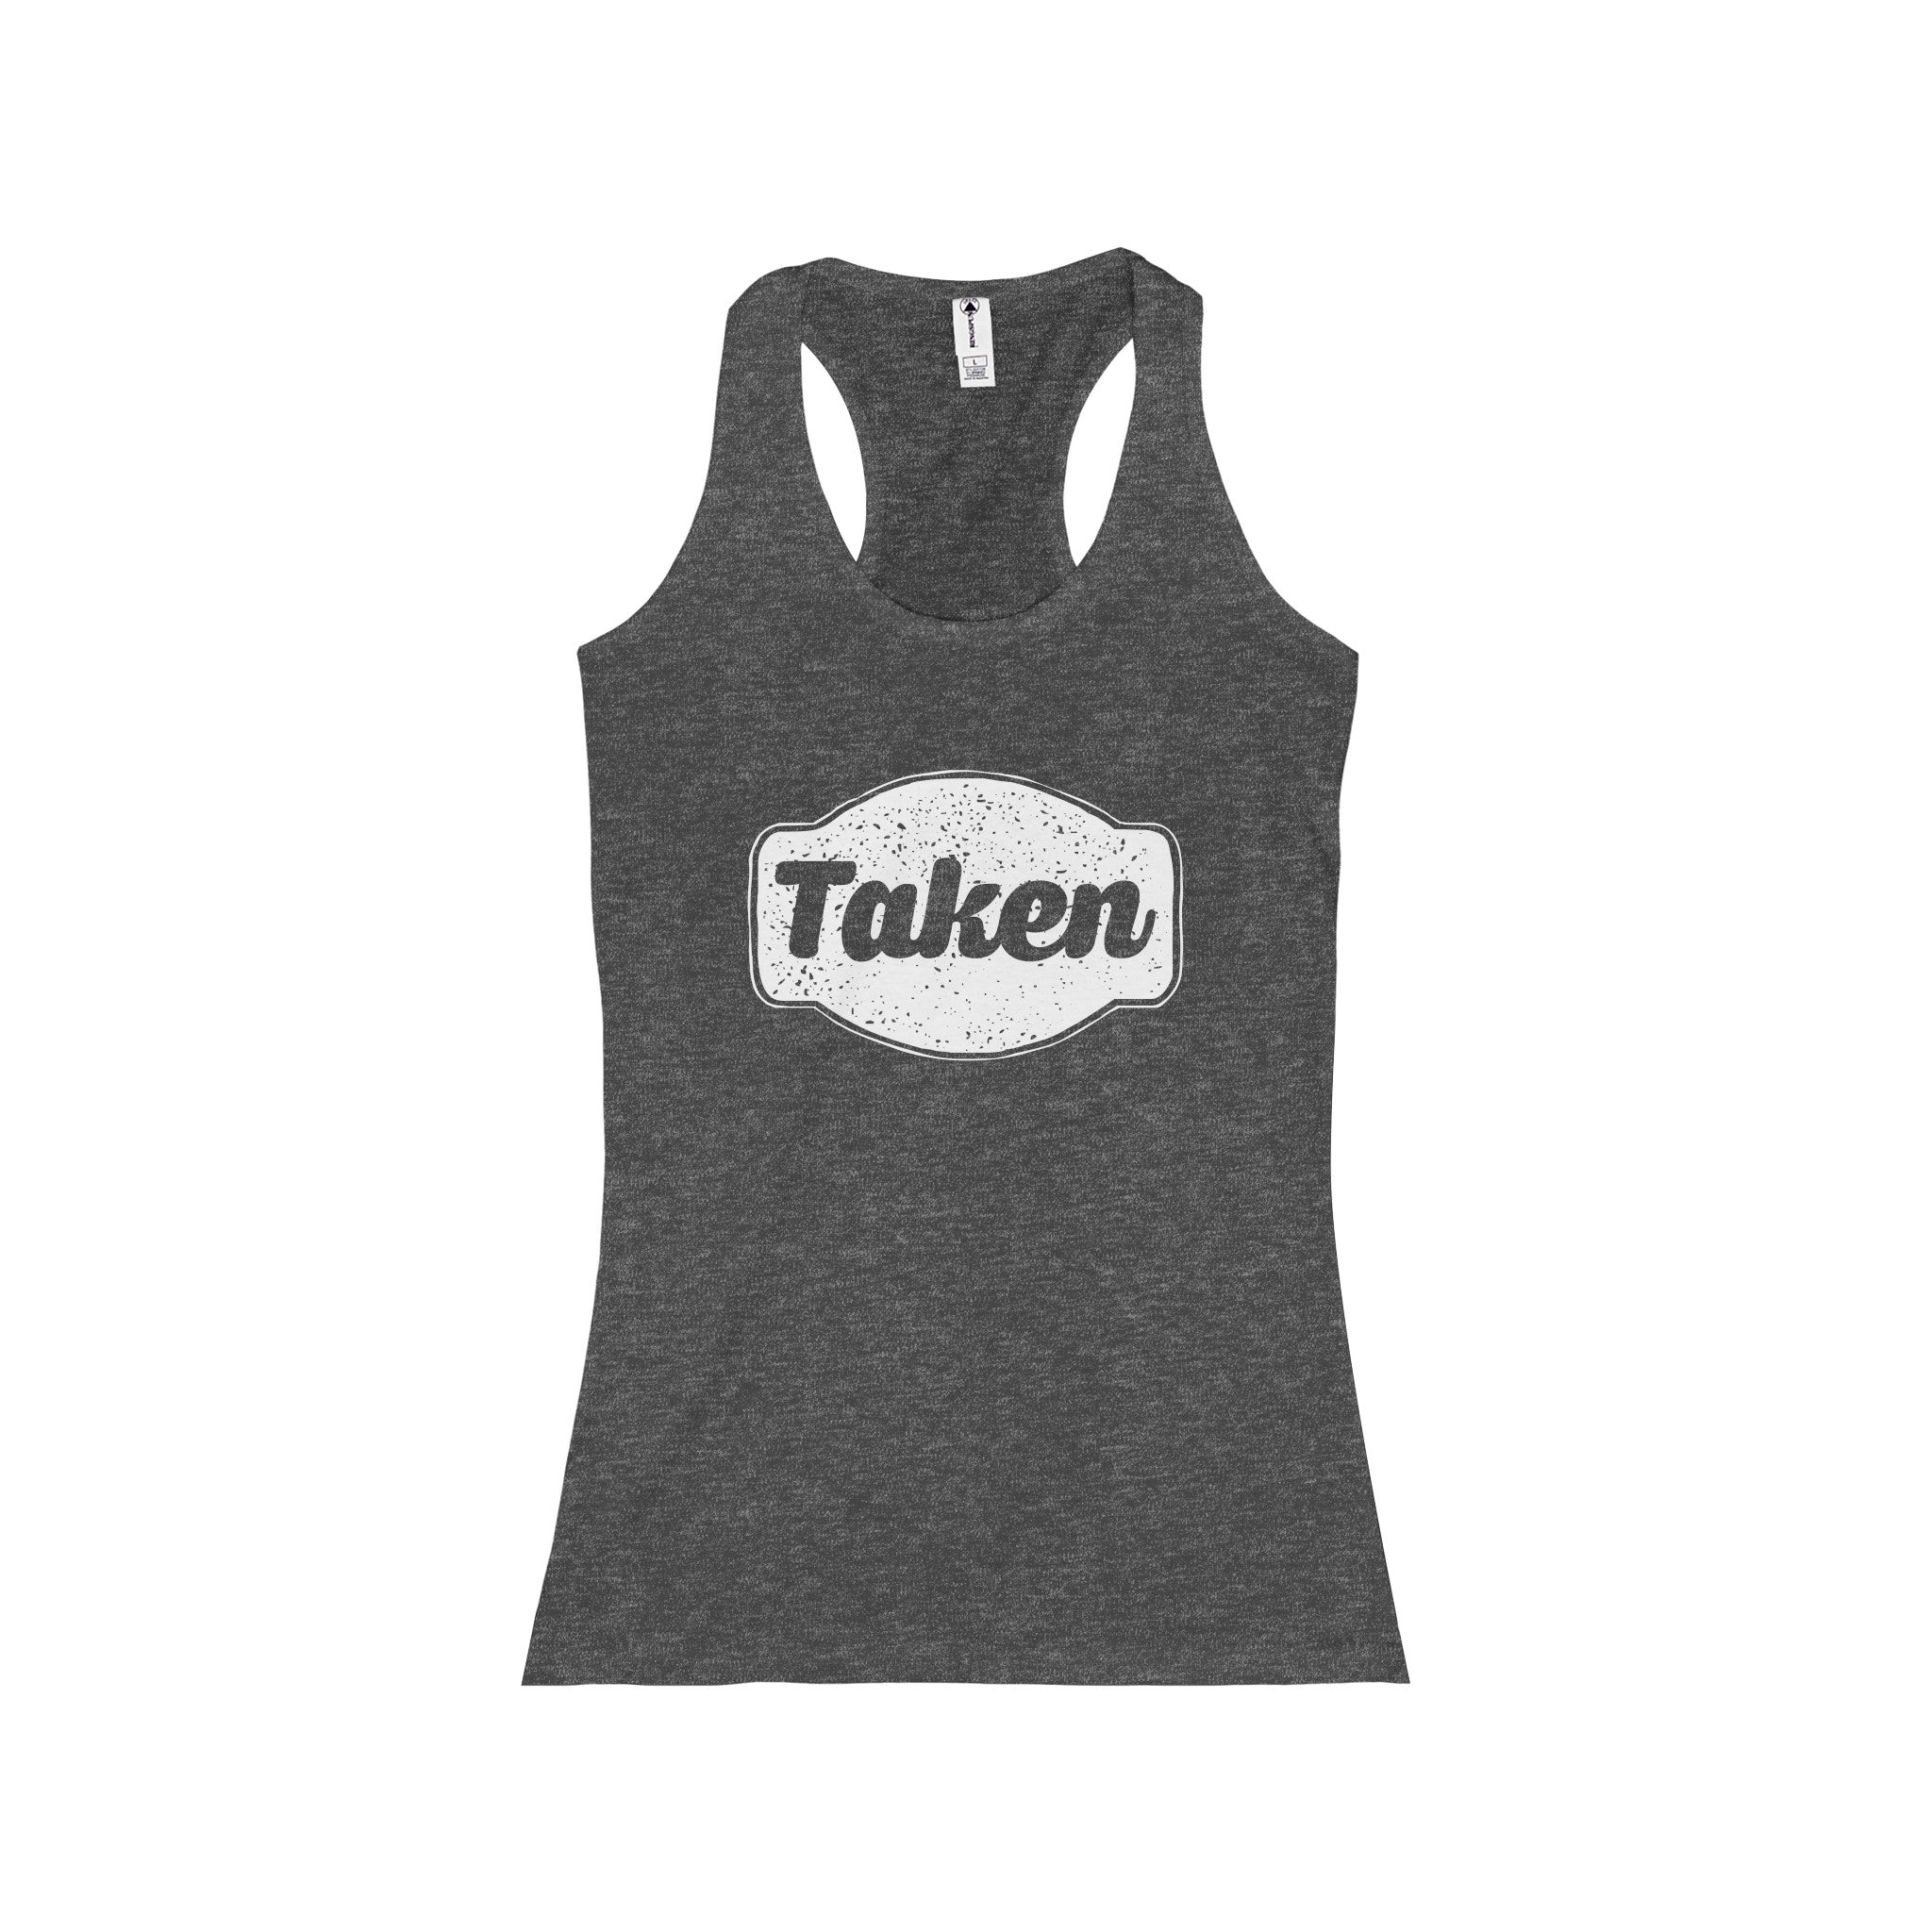 Taken Junior Racerback Tank, Tank Top - PureDesignTees